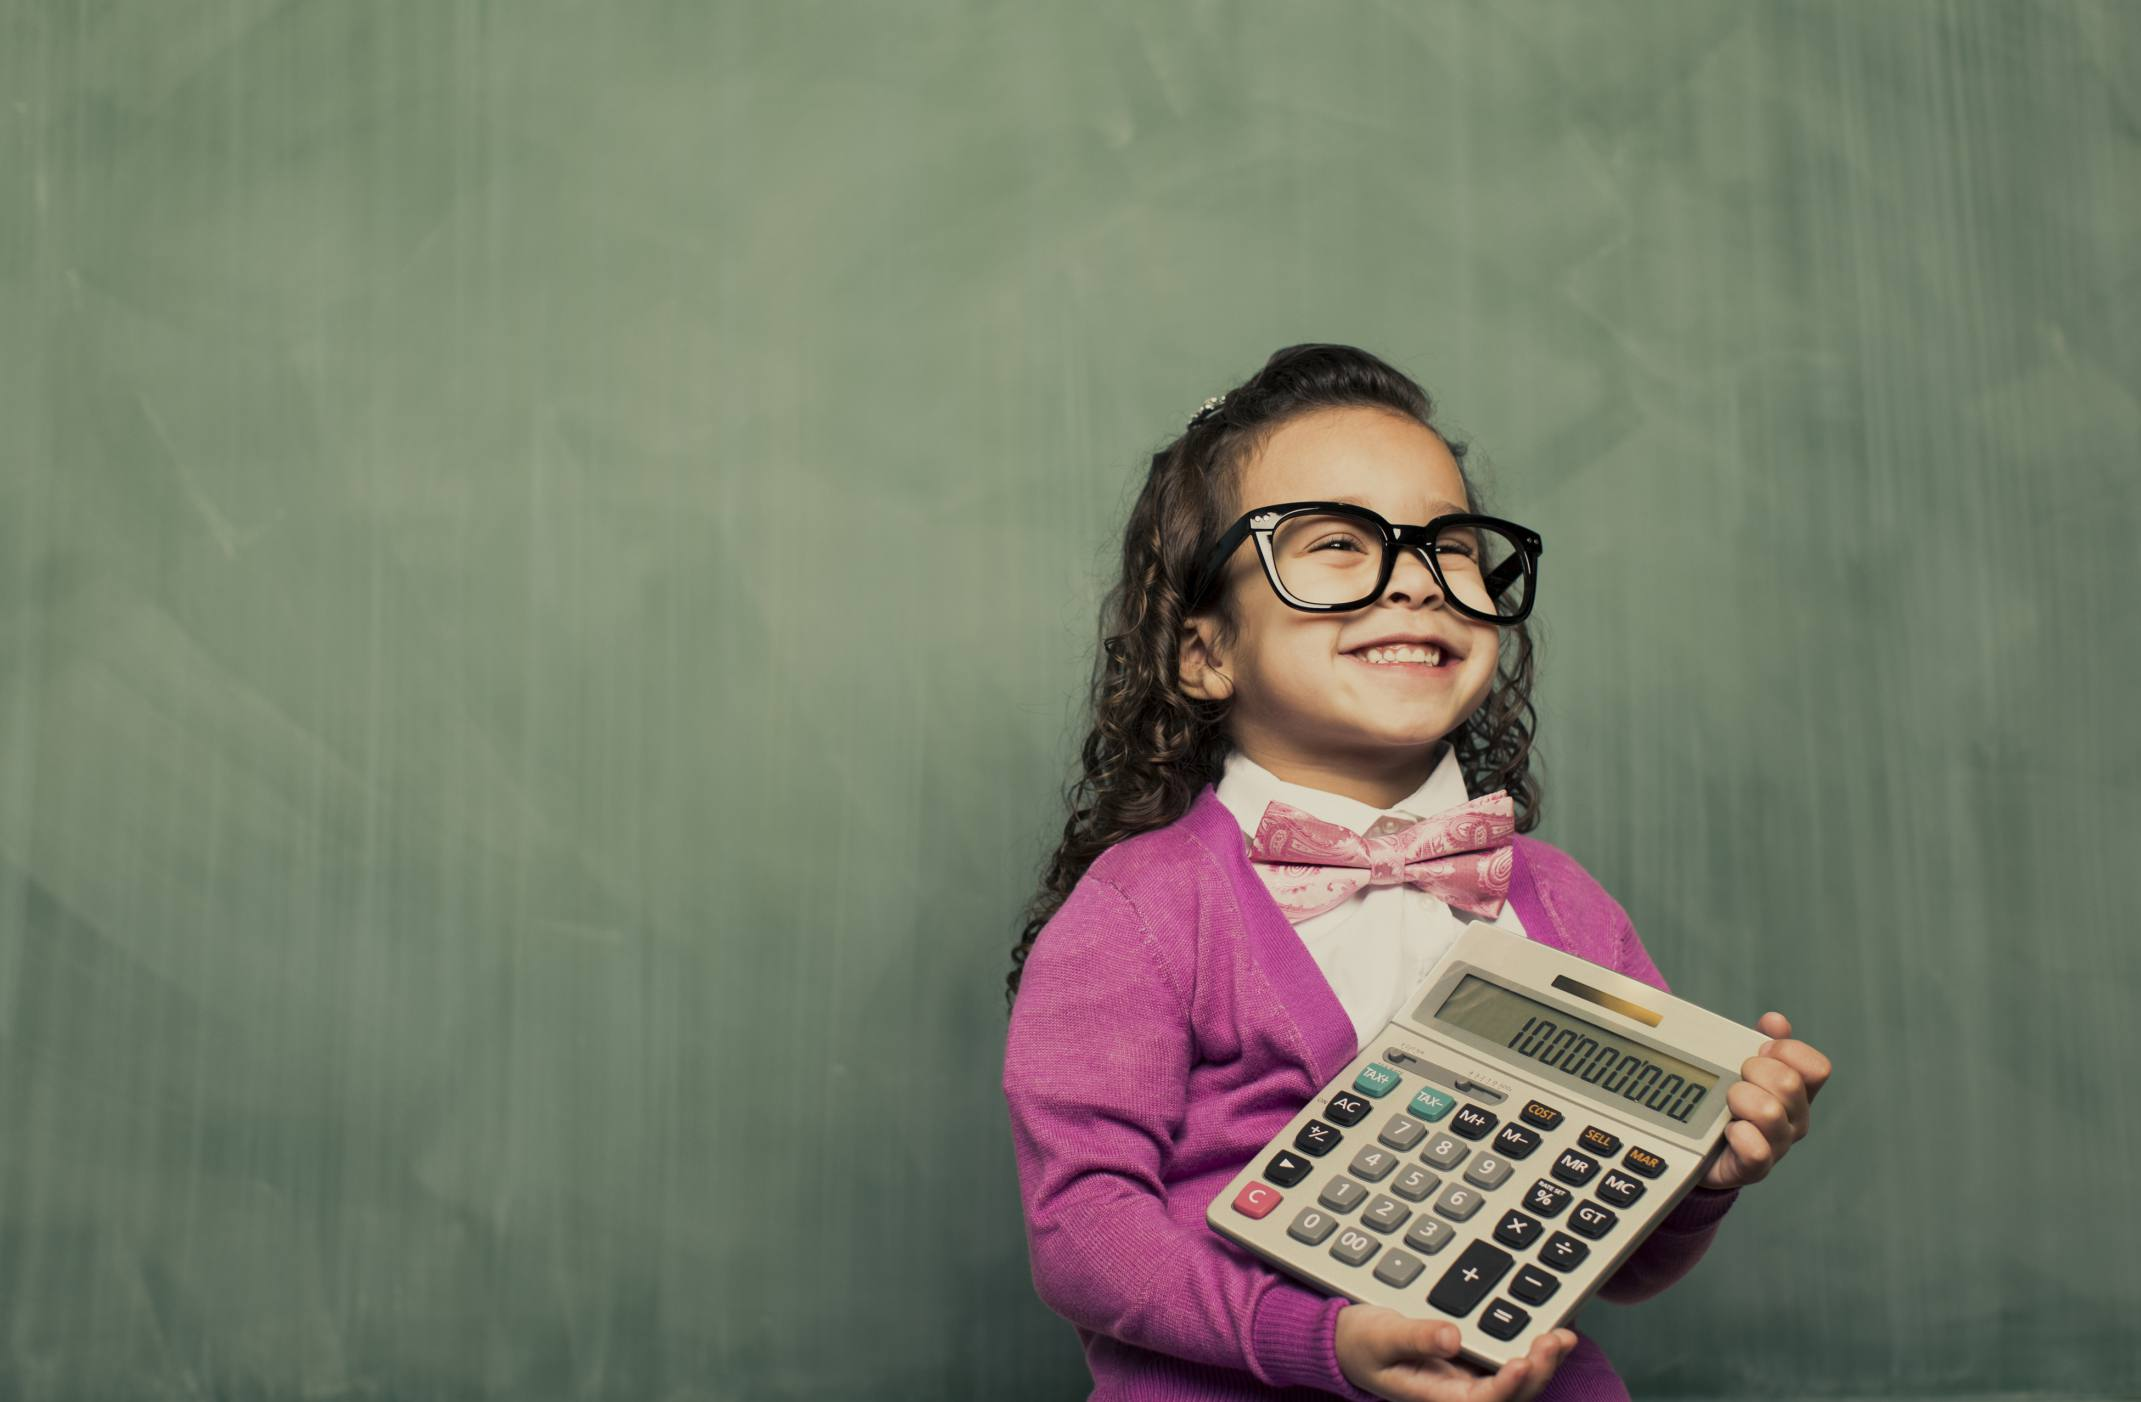 A young girl holding a large calculator.